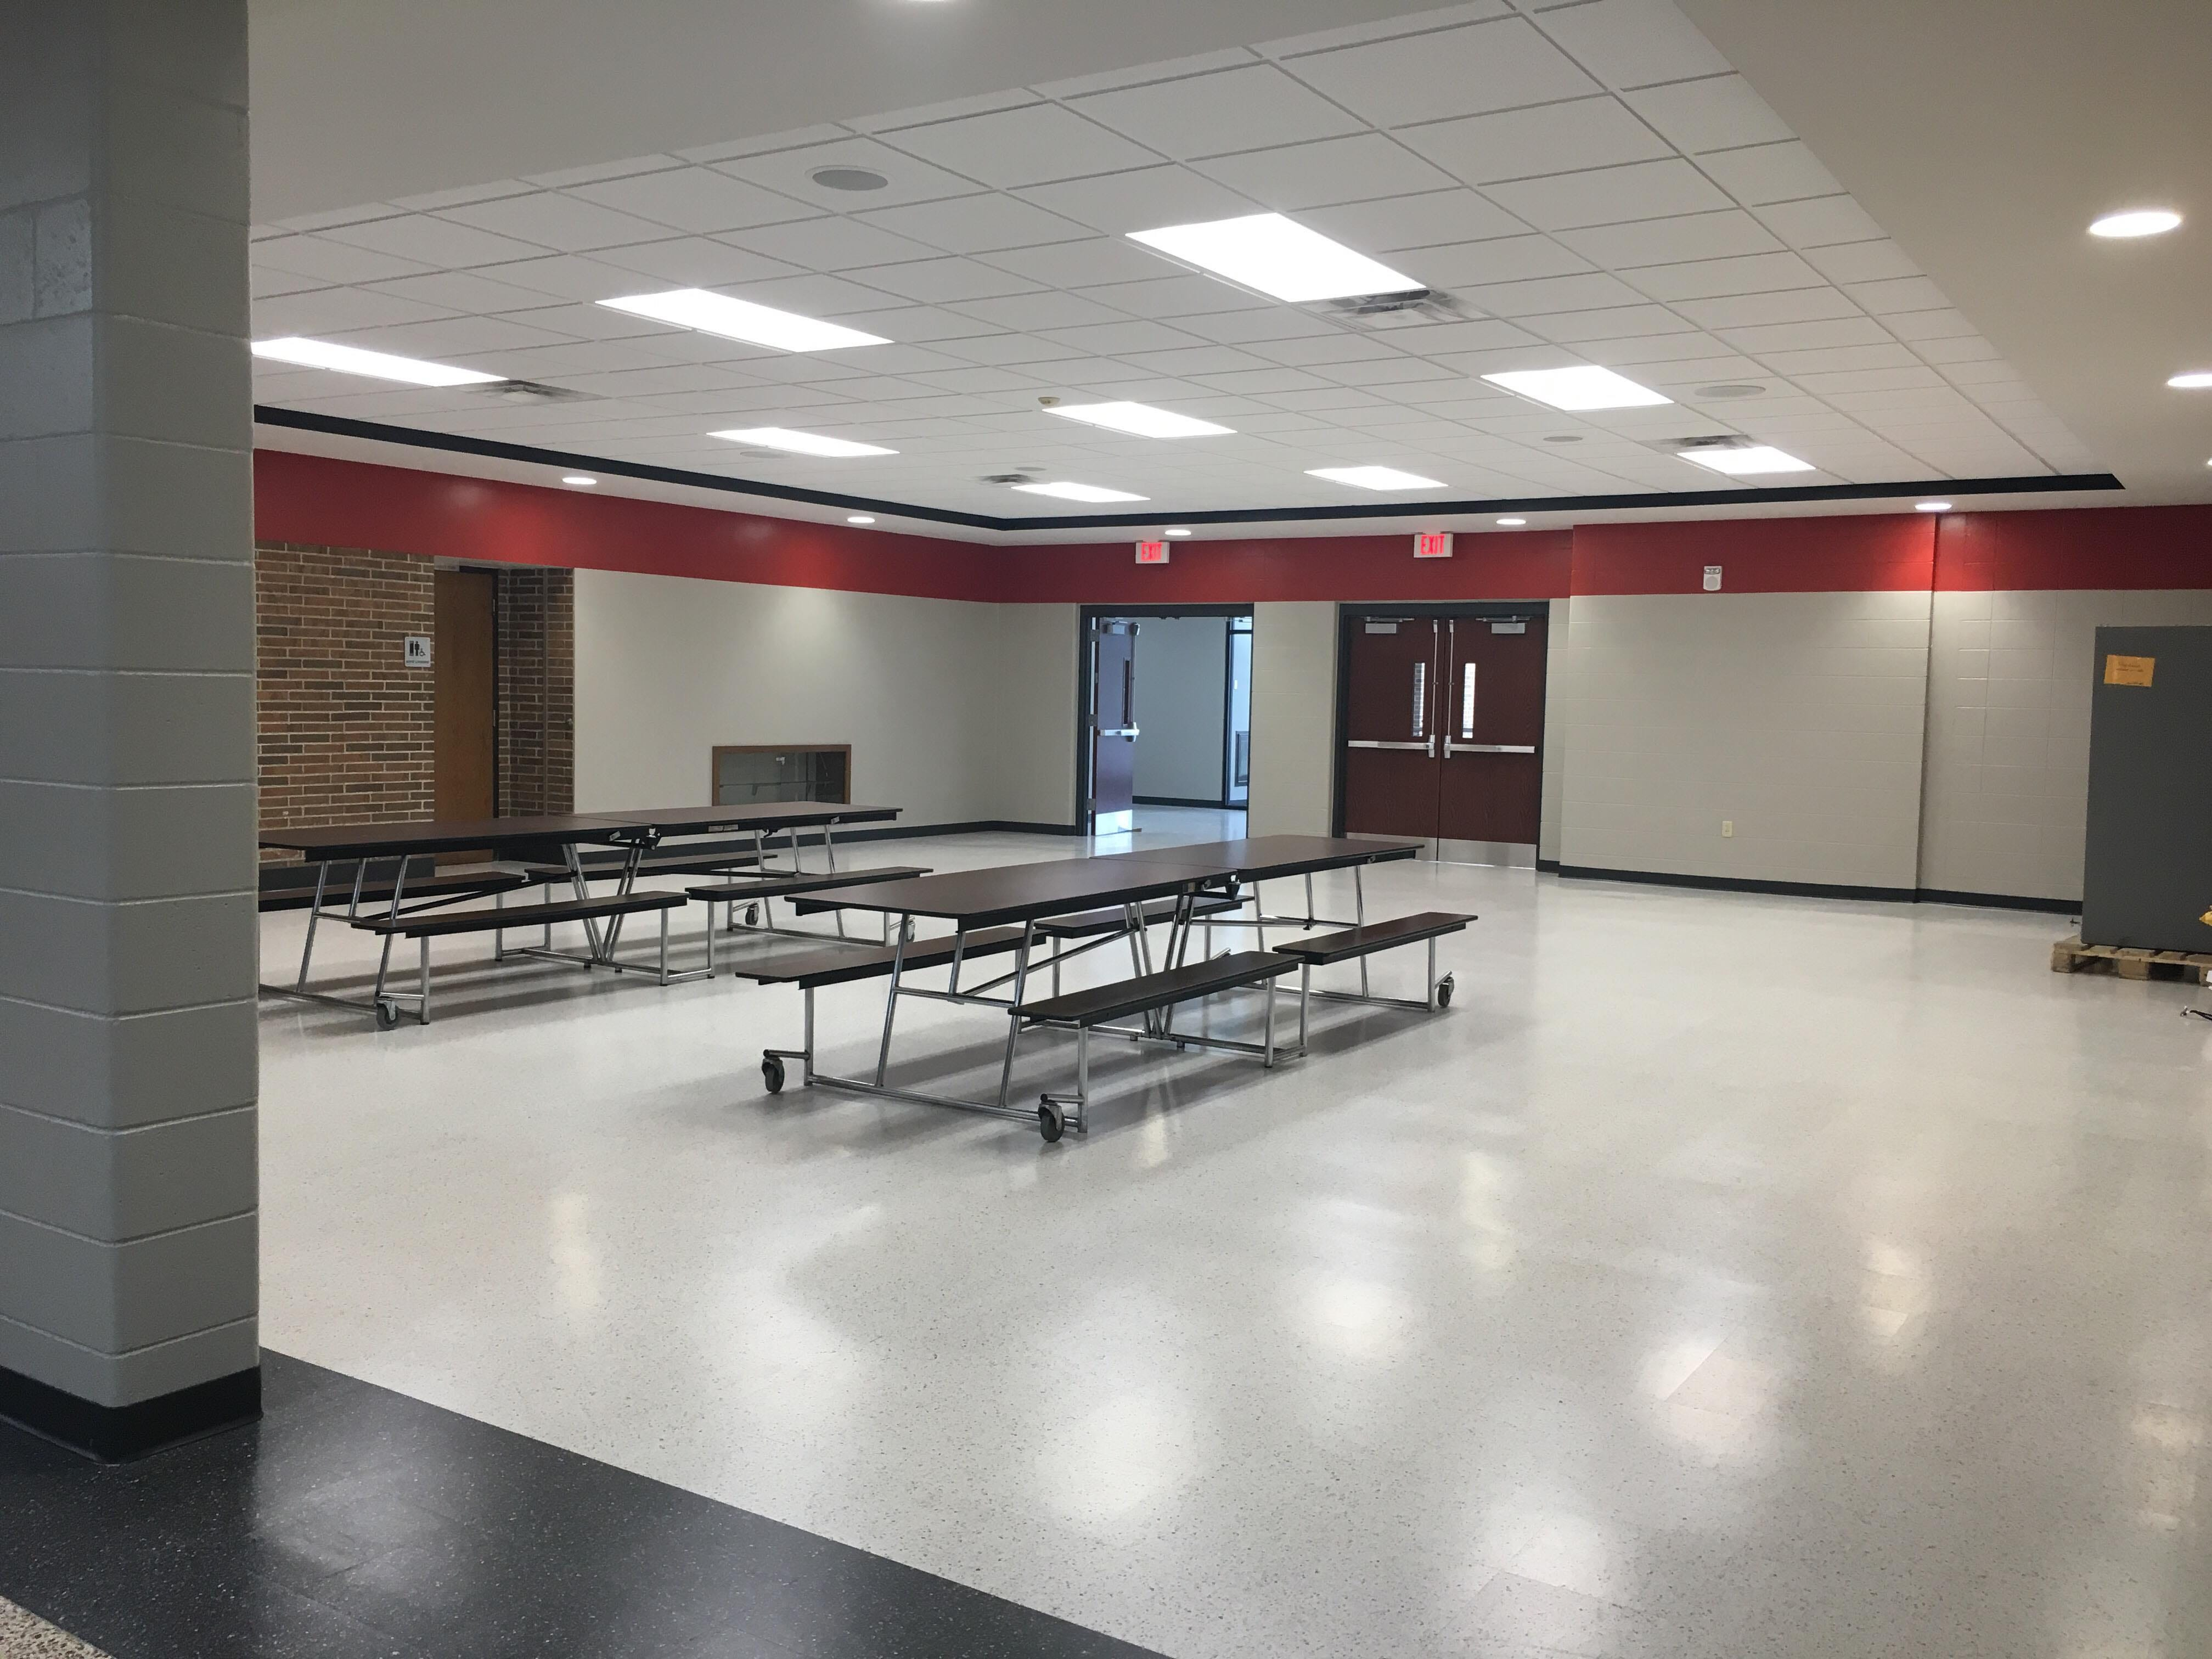 The new main entrance at Wisconsin Rapids Area Middle School is a former classroom and also holds the concession area.